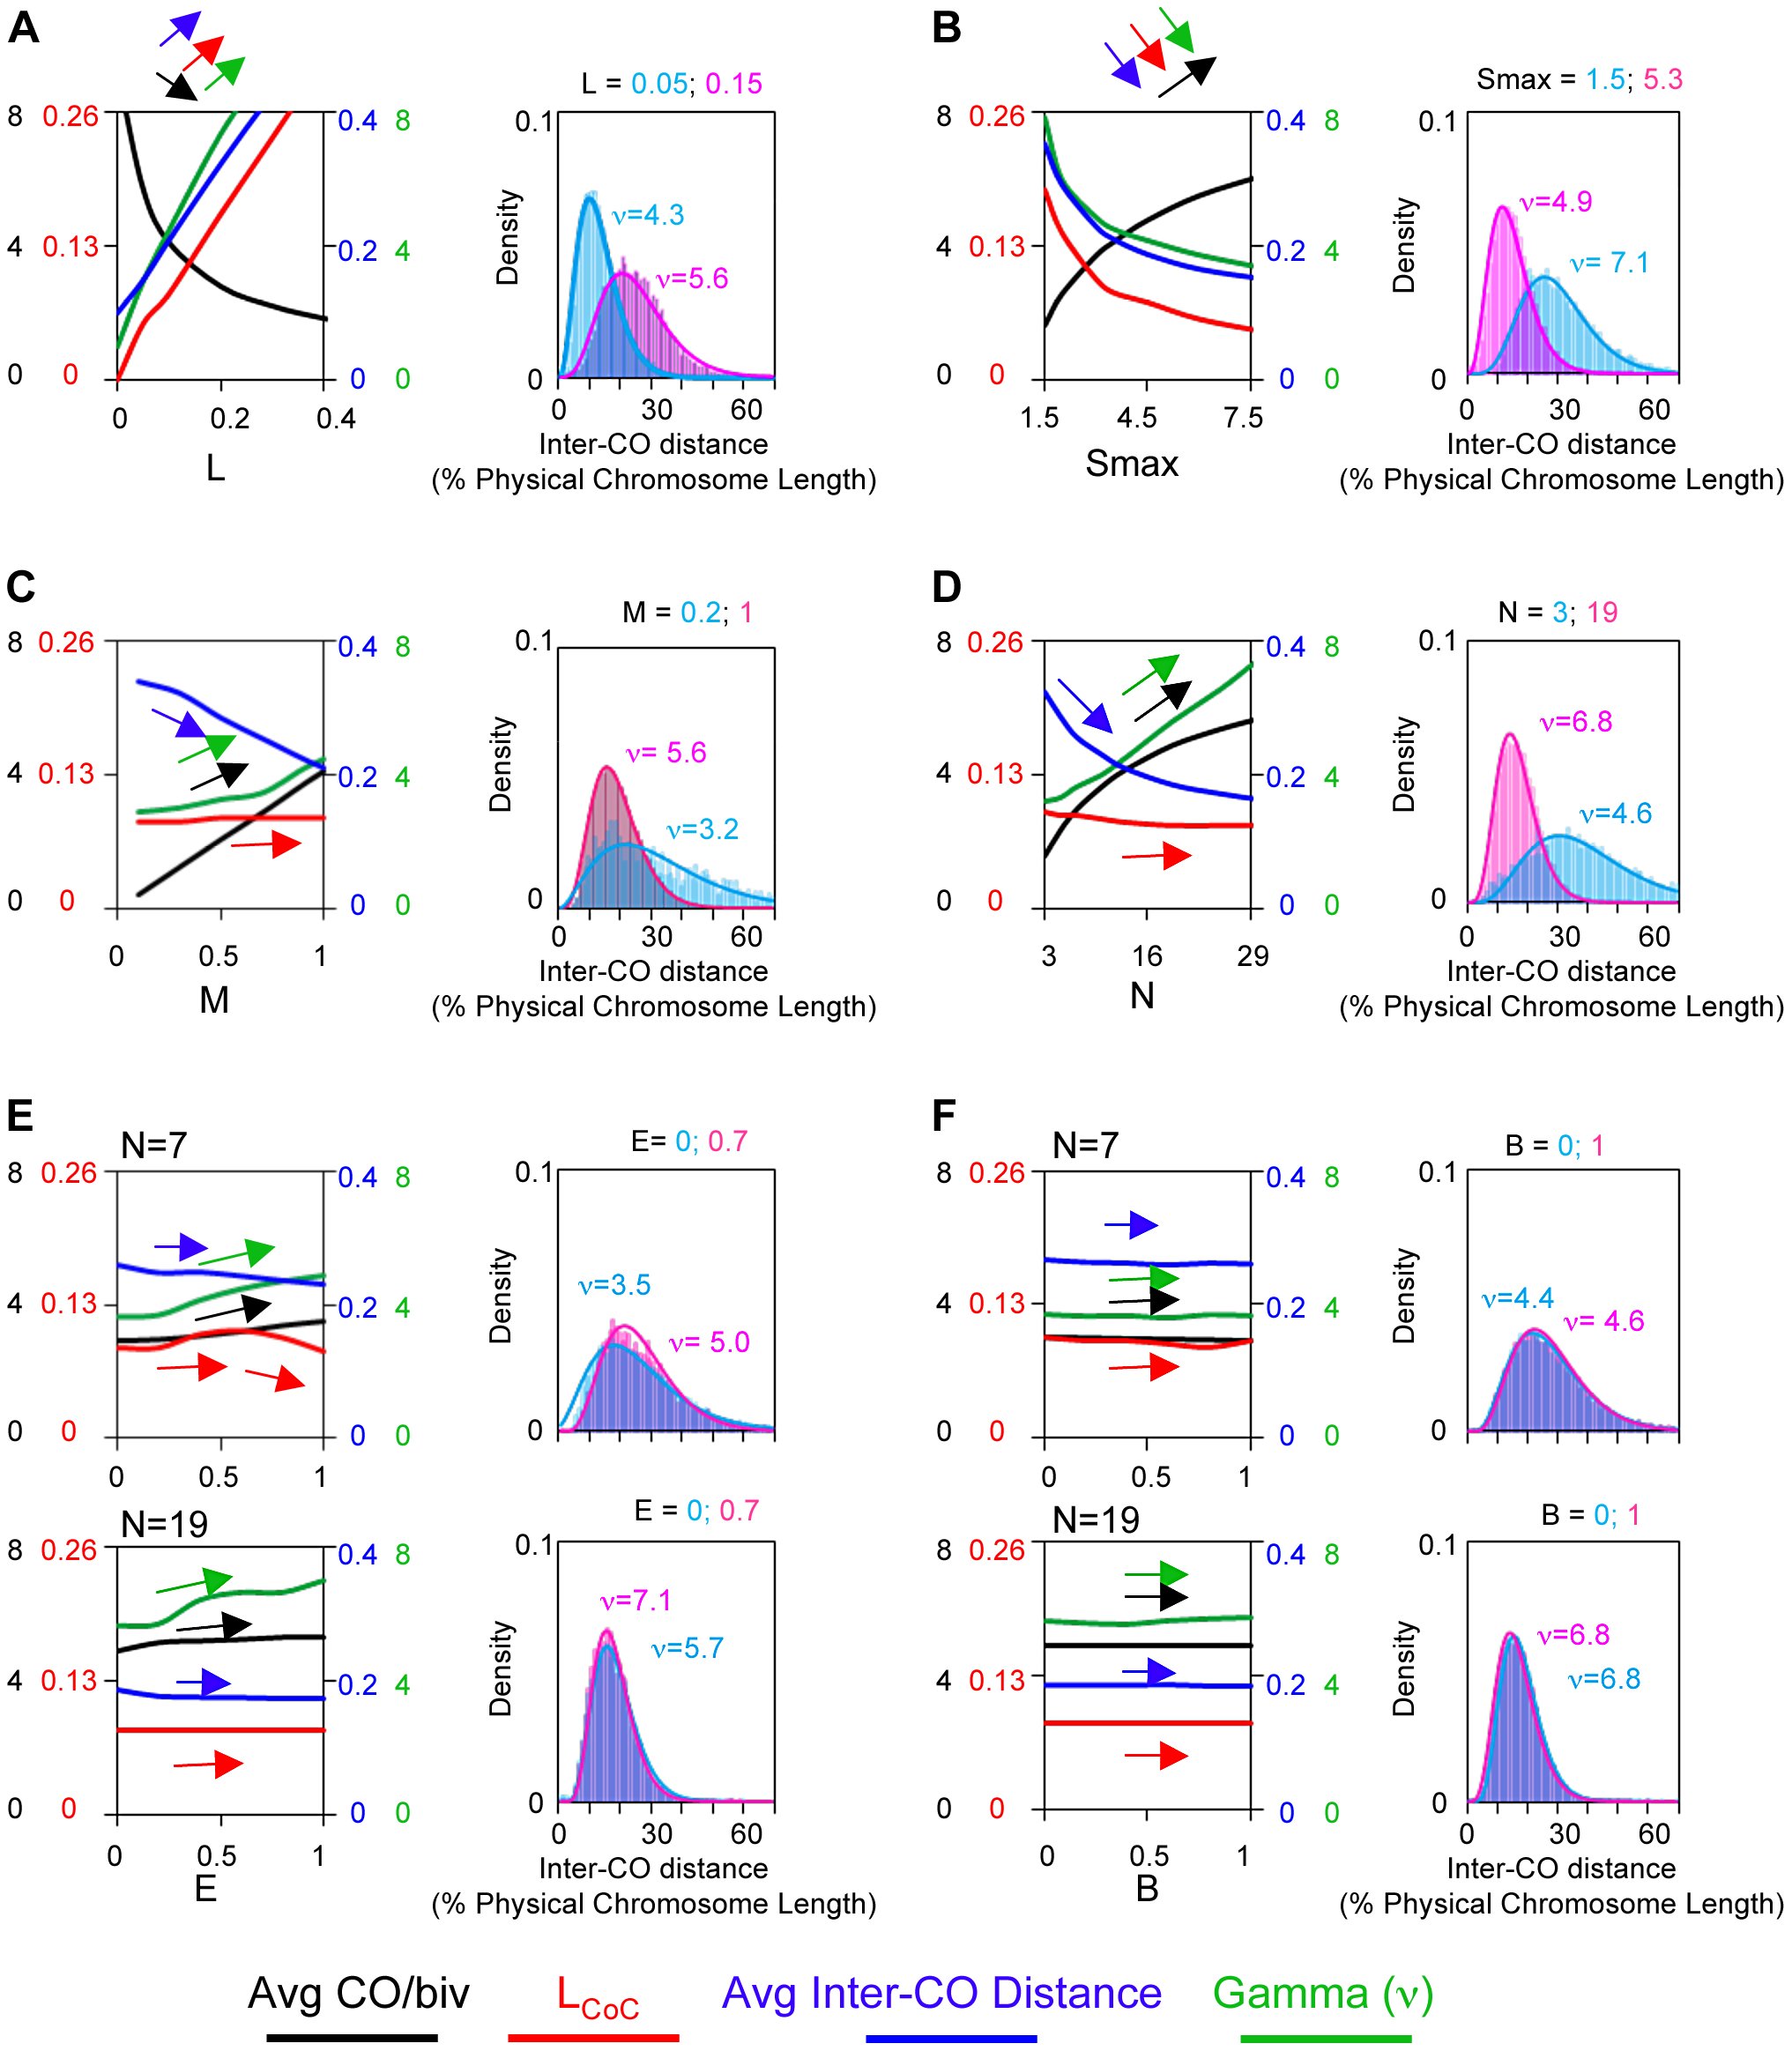 Application of the gamma distribution to CO patterns: Risks and rewards.